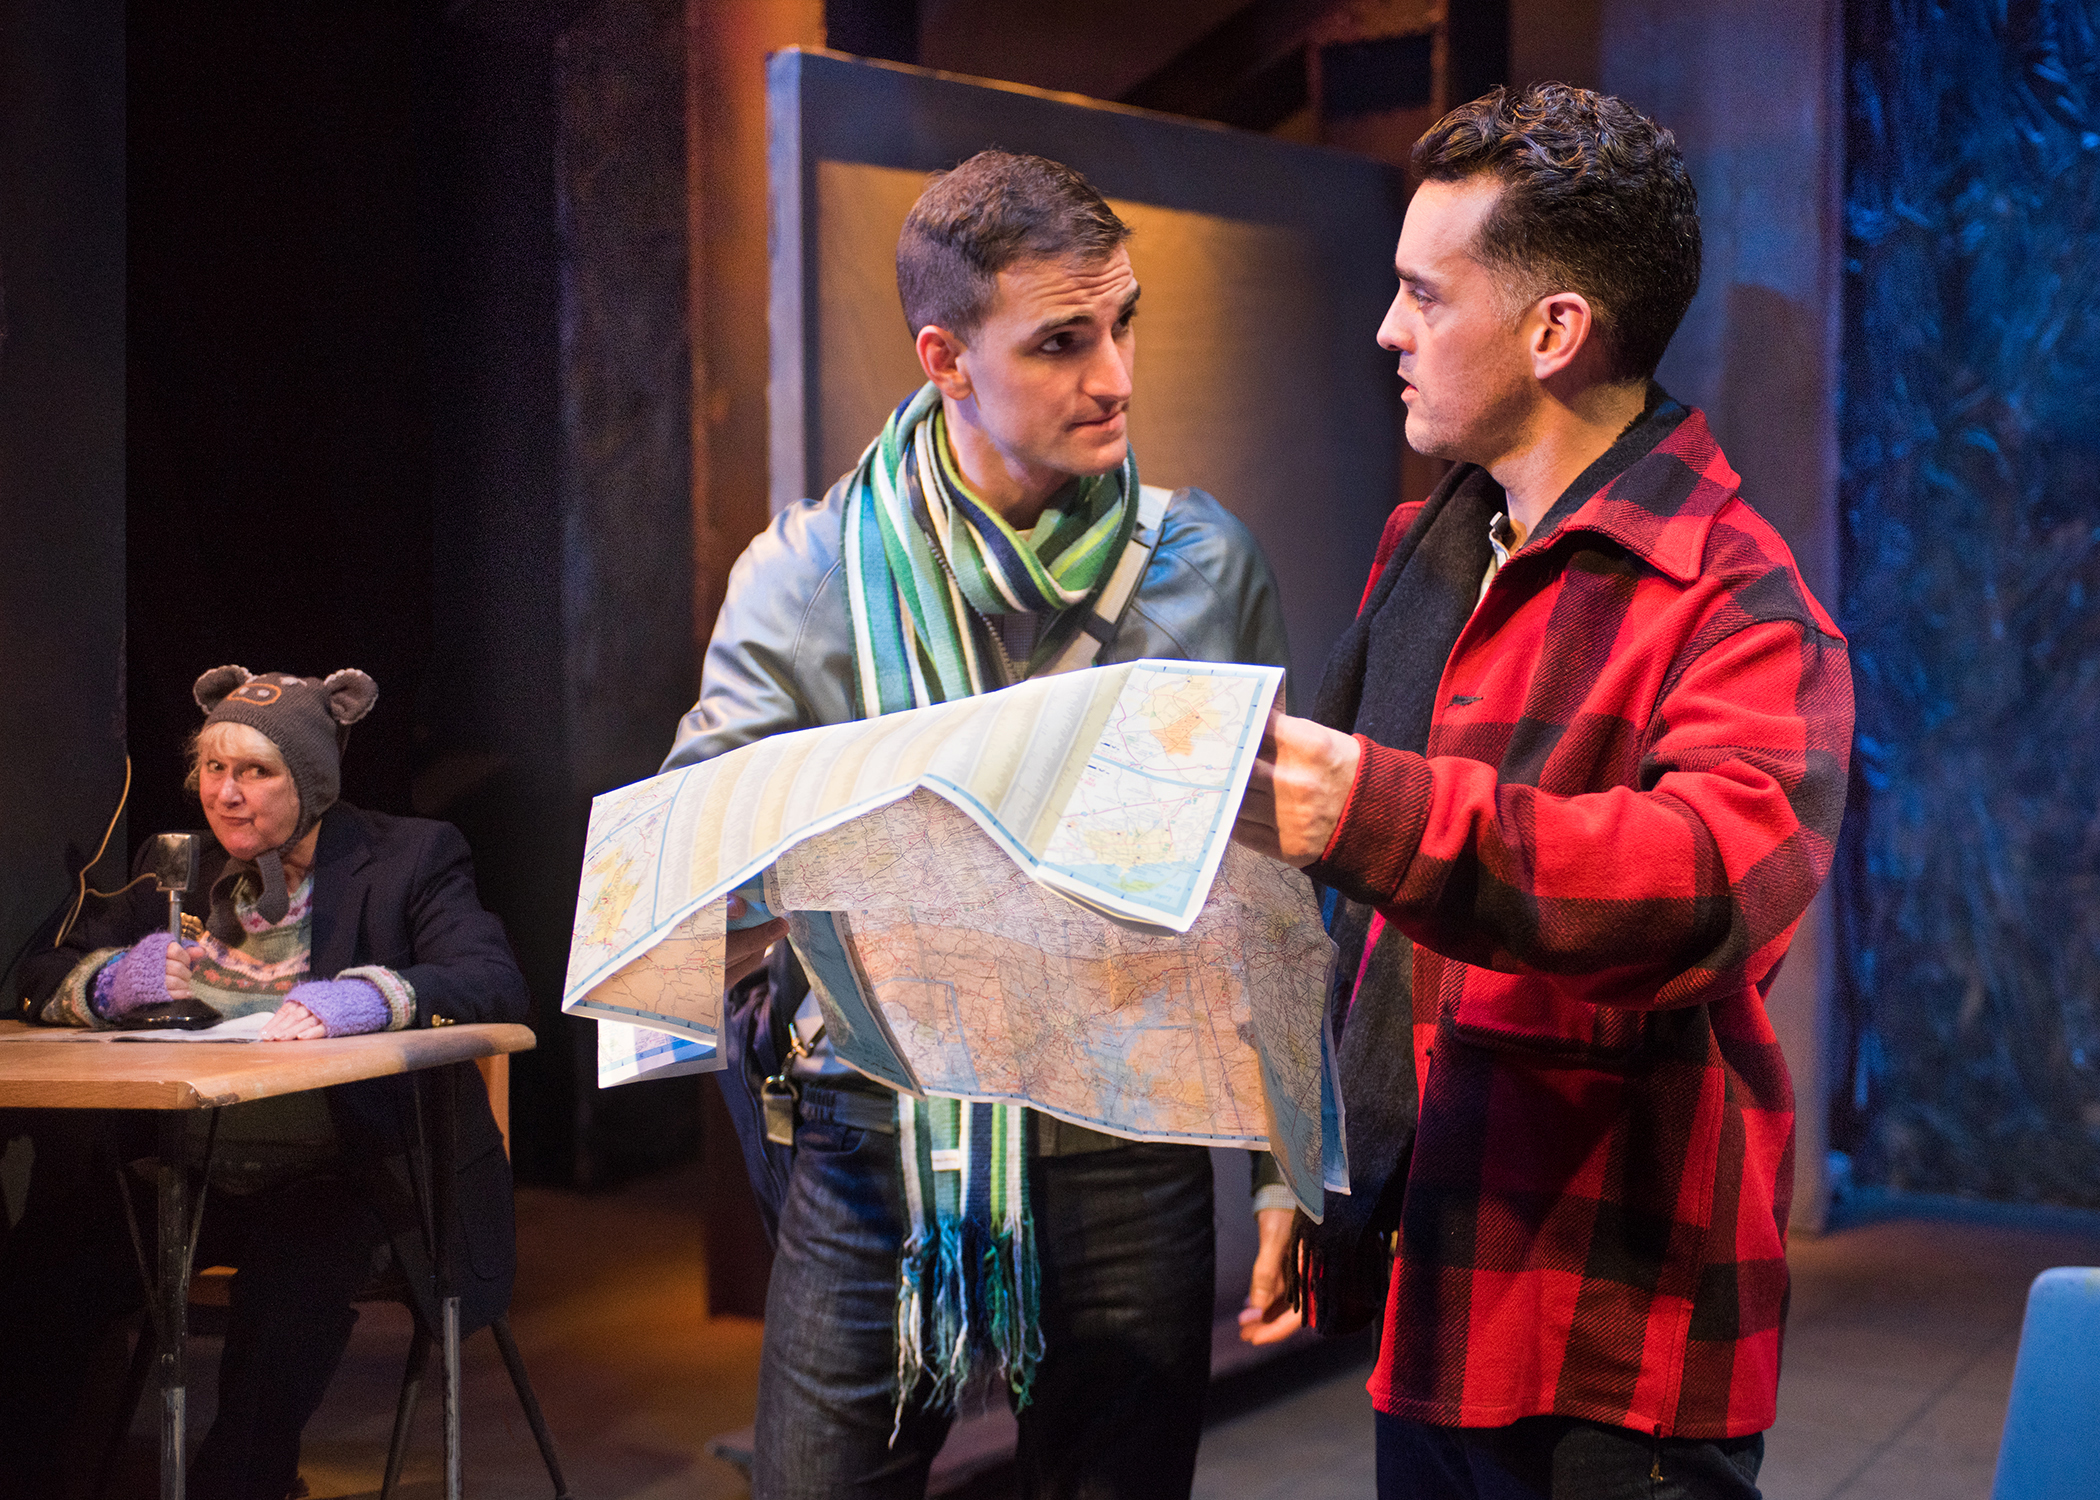 Loralee Windsor, JD Scalzo, Eric Kerr.  Scenic design by Devin Kasper, costume design by Jorge R. Hernandez, lighting design by Virginia Herbert, sound design by Sara Witsch, prop design by Daniel Yelen, and stage management by Kaitlin Rosen.  Photo by Lois Tema